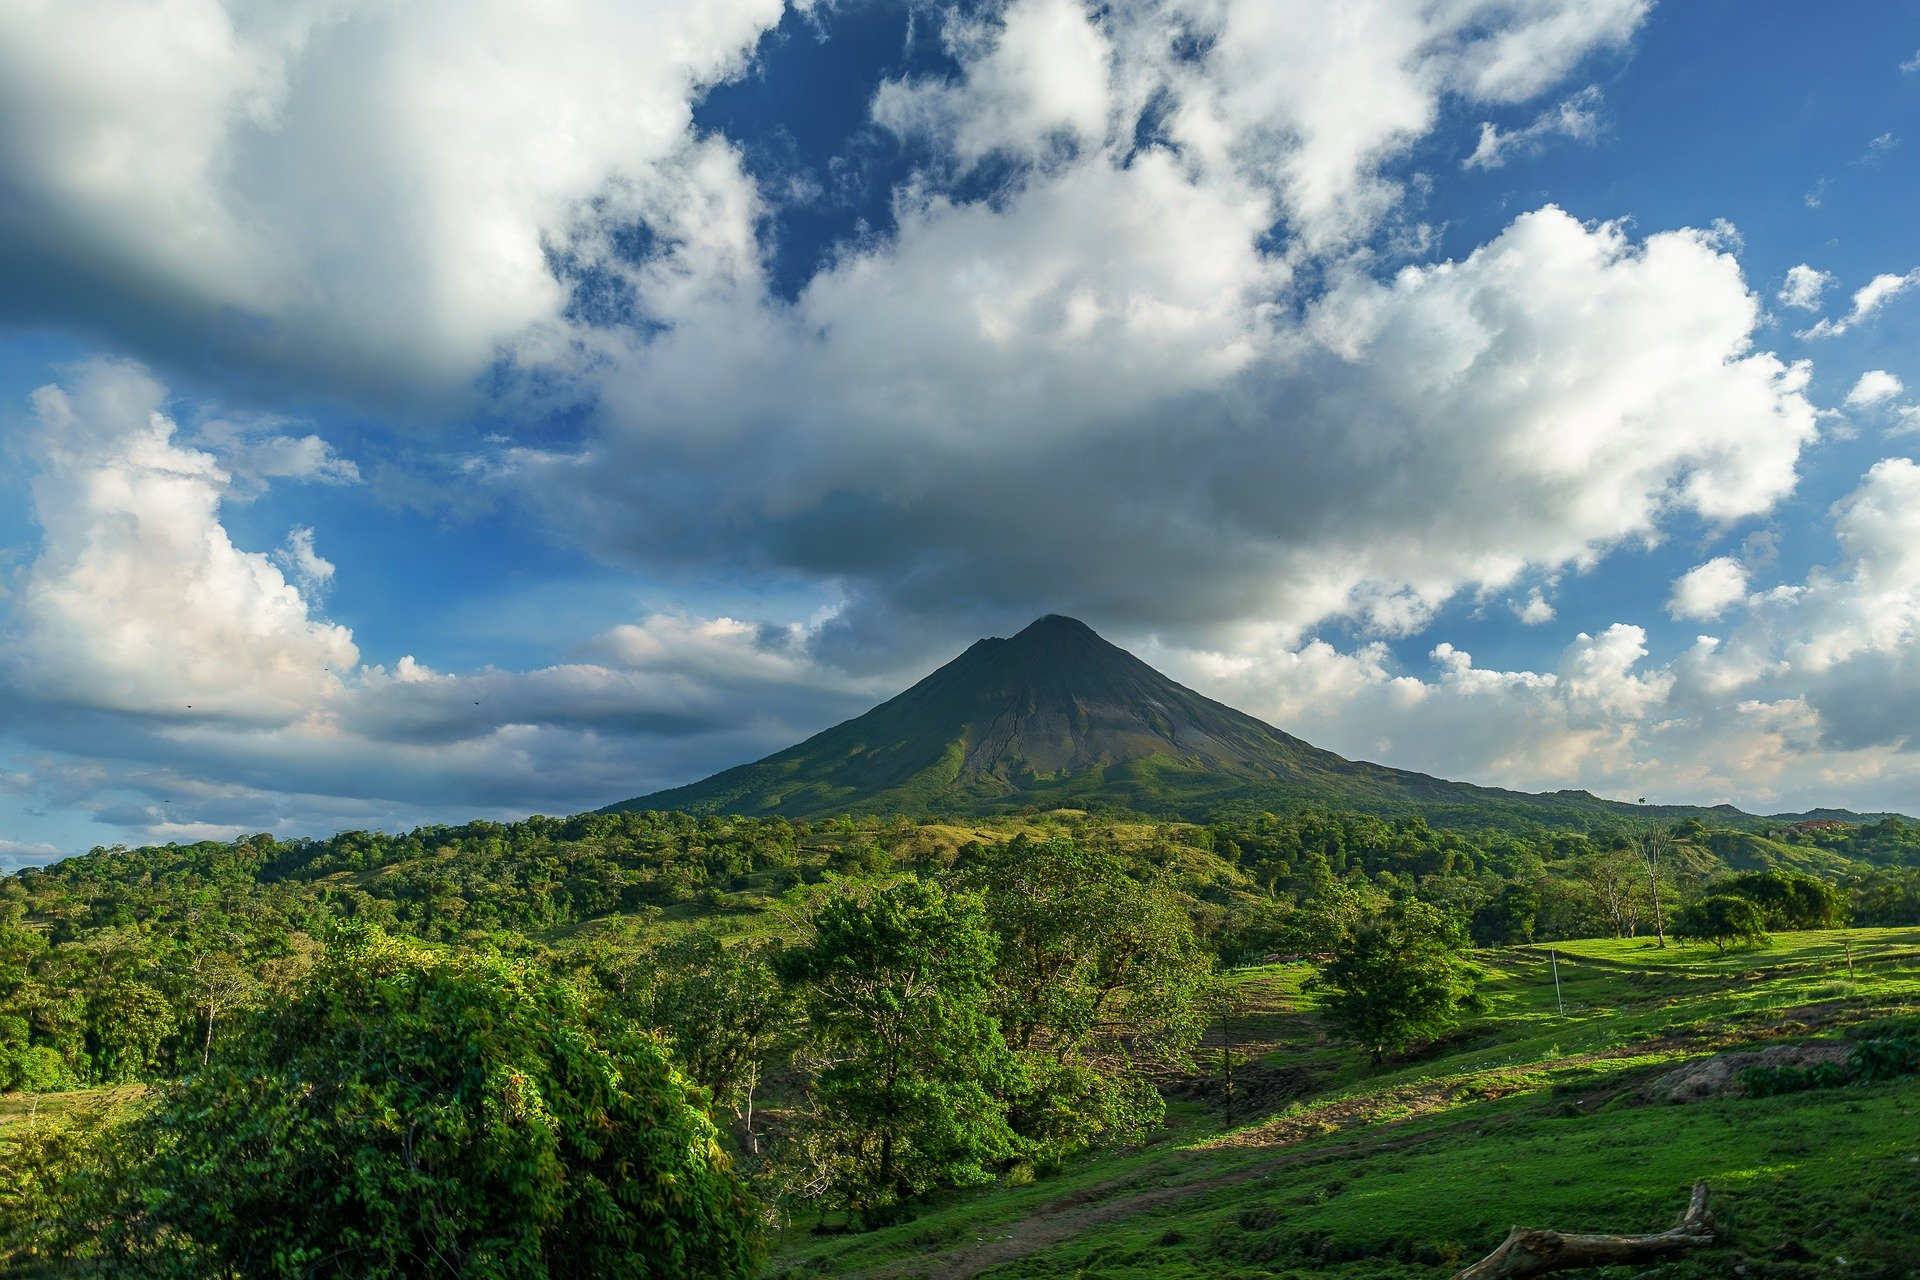 Main image of article: A trip to Costa Rica